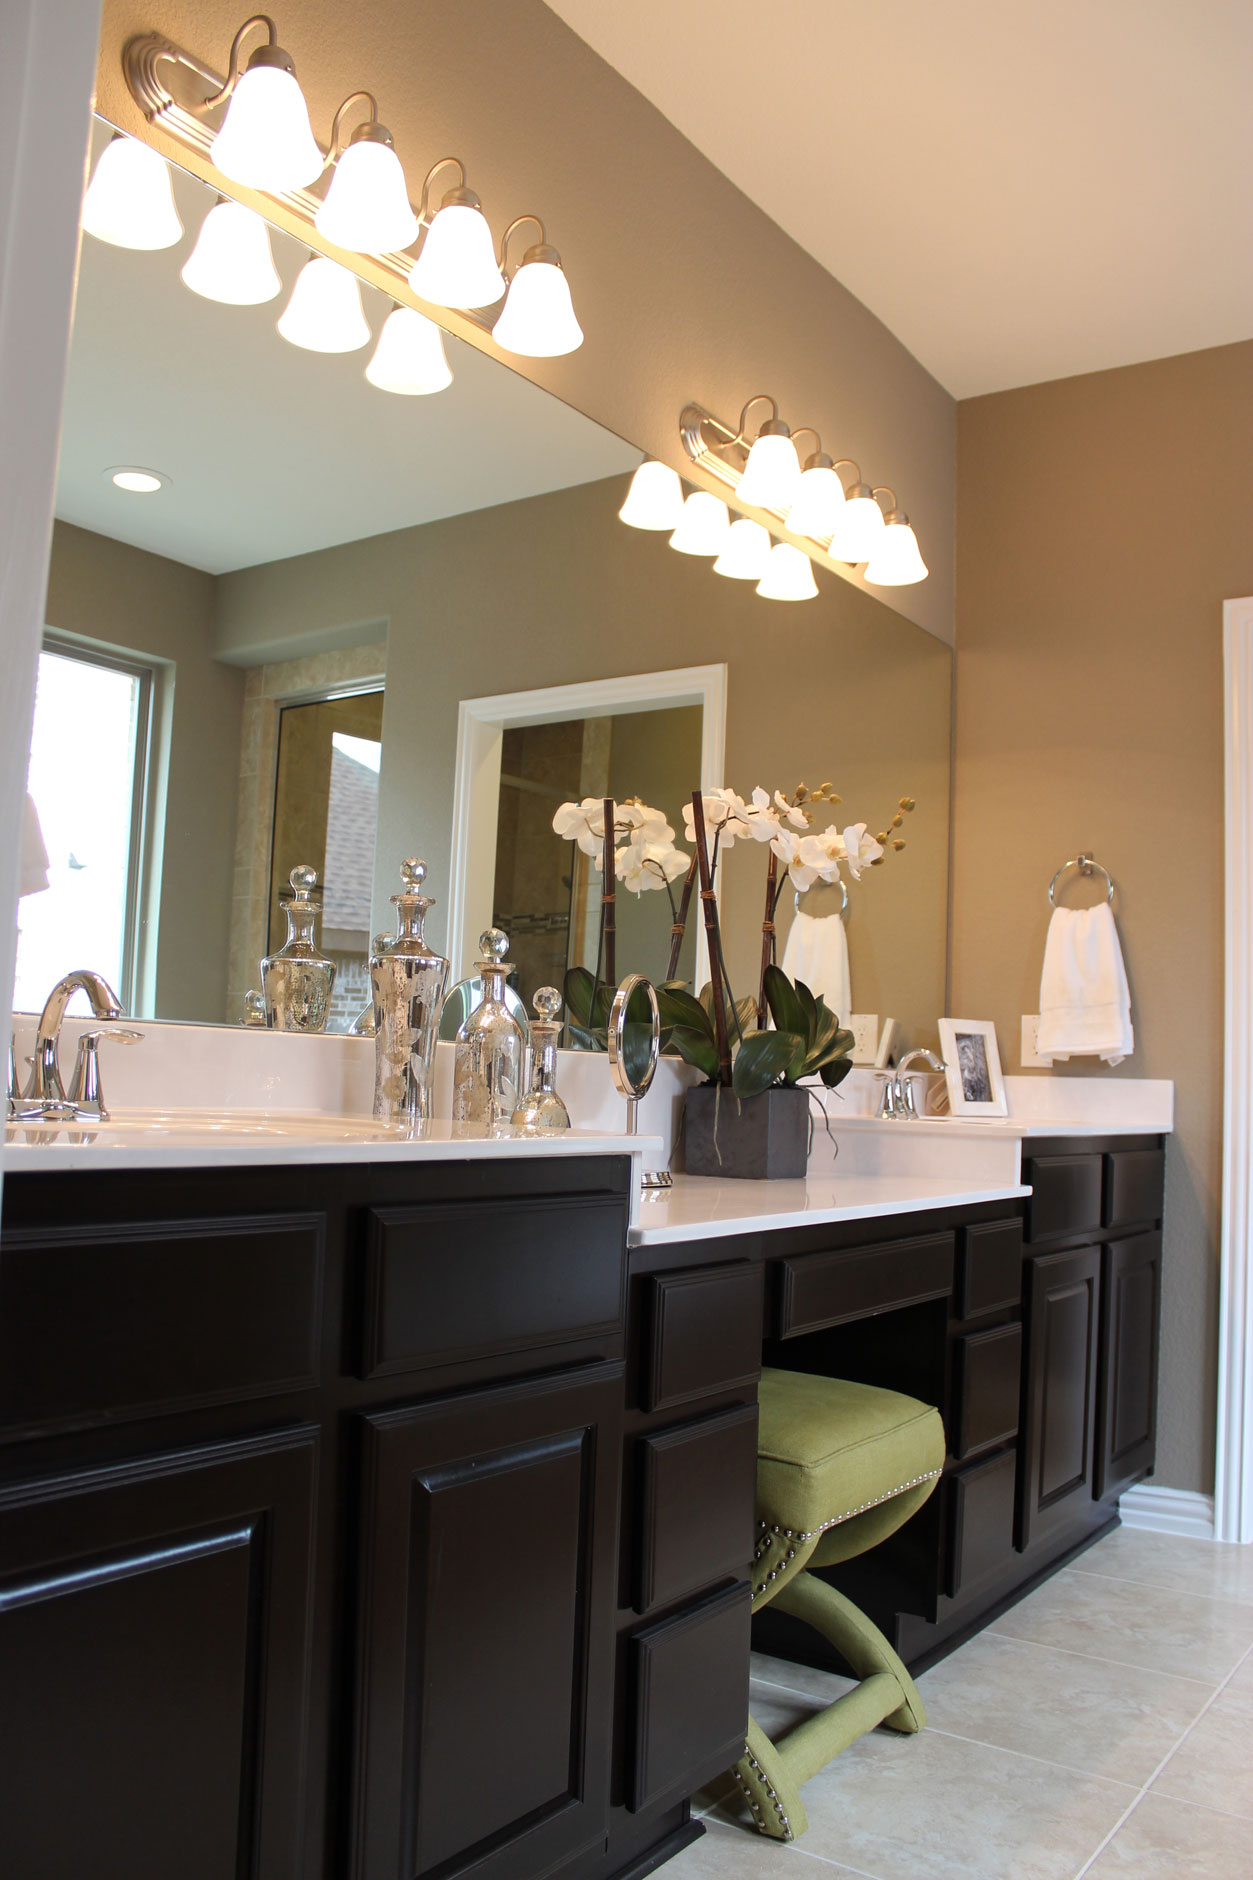 Master bath cabinets with C101 OE1, IE1, RP1 cabinet doors by TaylorCraft Cabinet Door Company